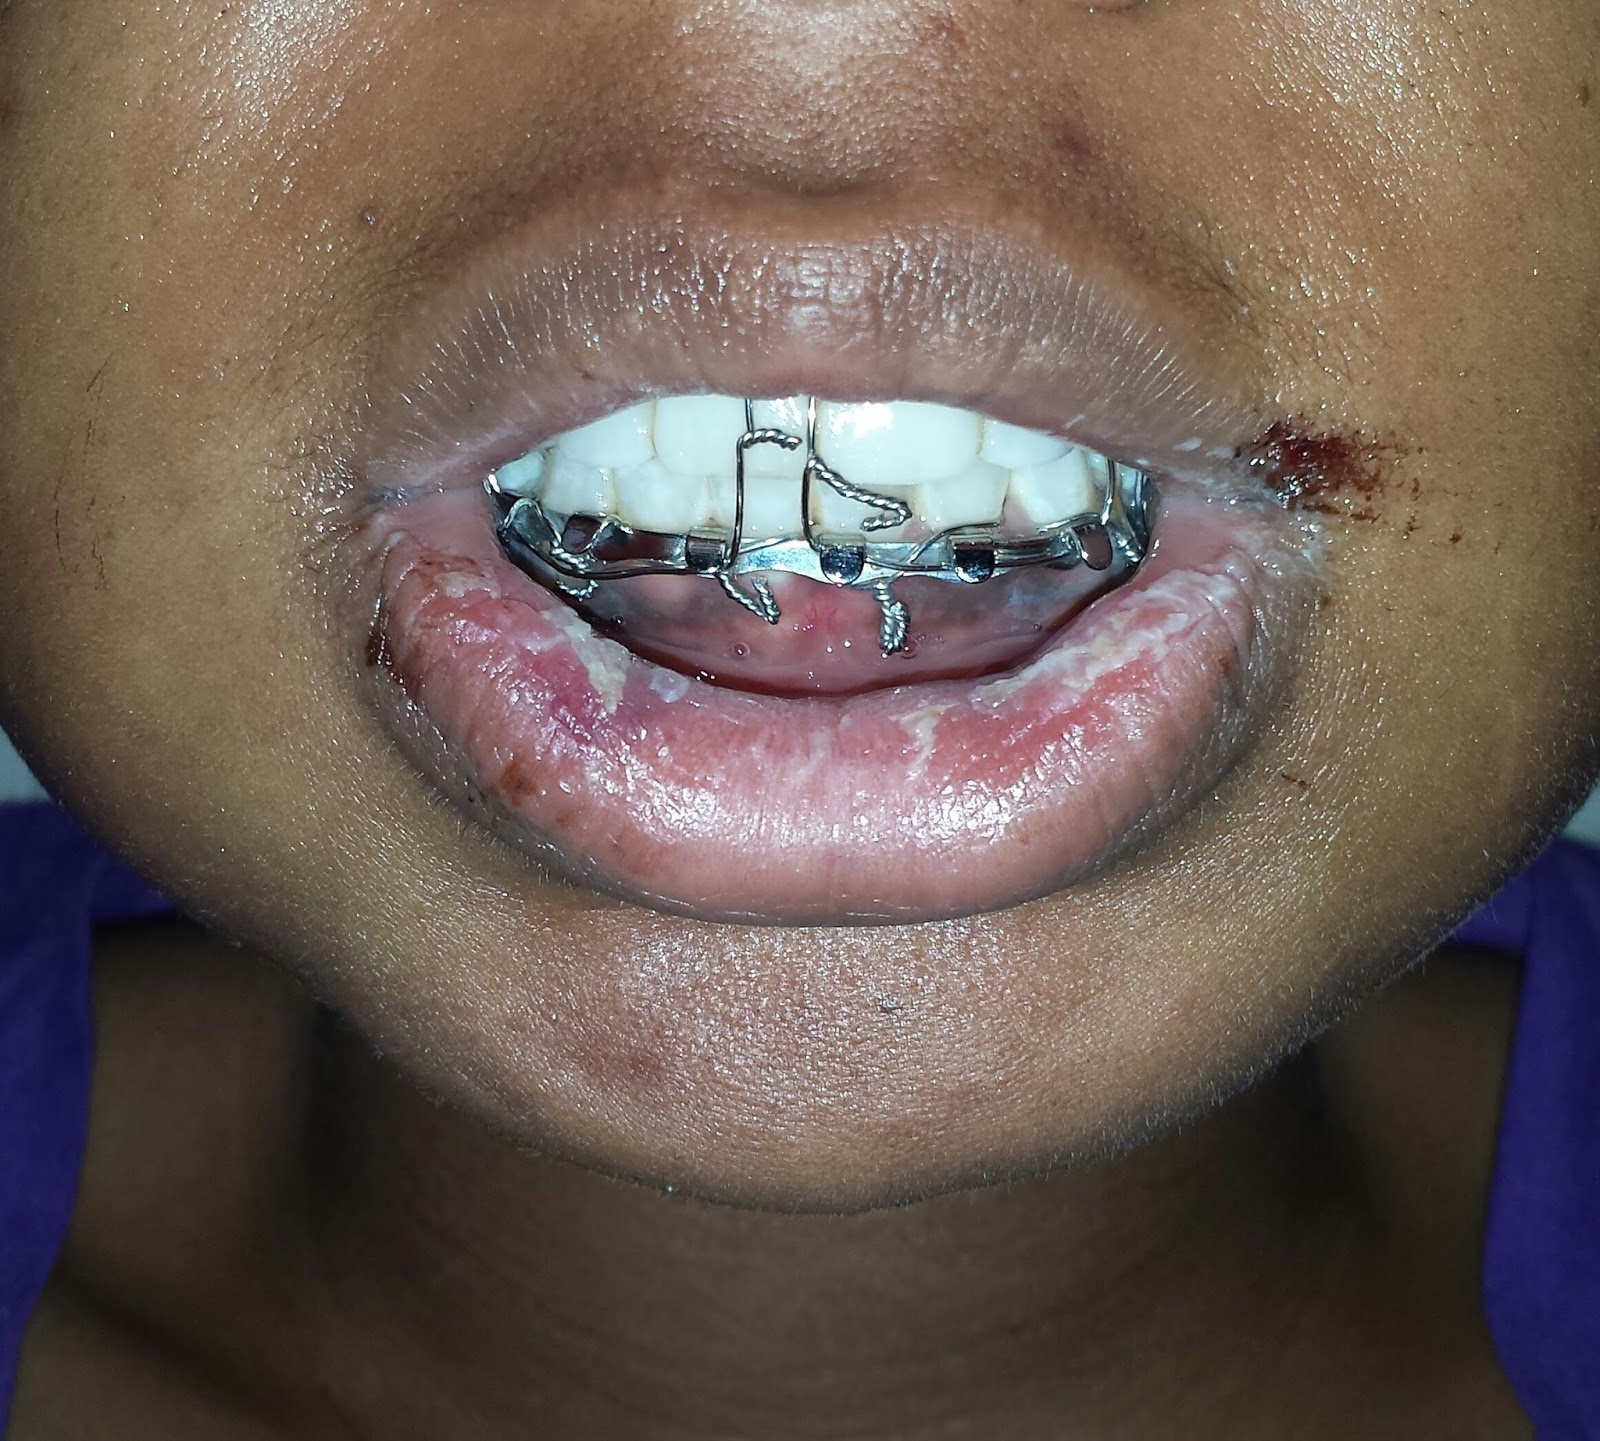 Through the Wire: Journey With My Jaw Wired Shut and After ... on wiring a fractured jaw, wired shut, how surgeons wire jaws shut,